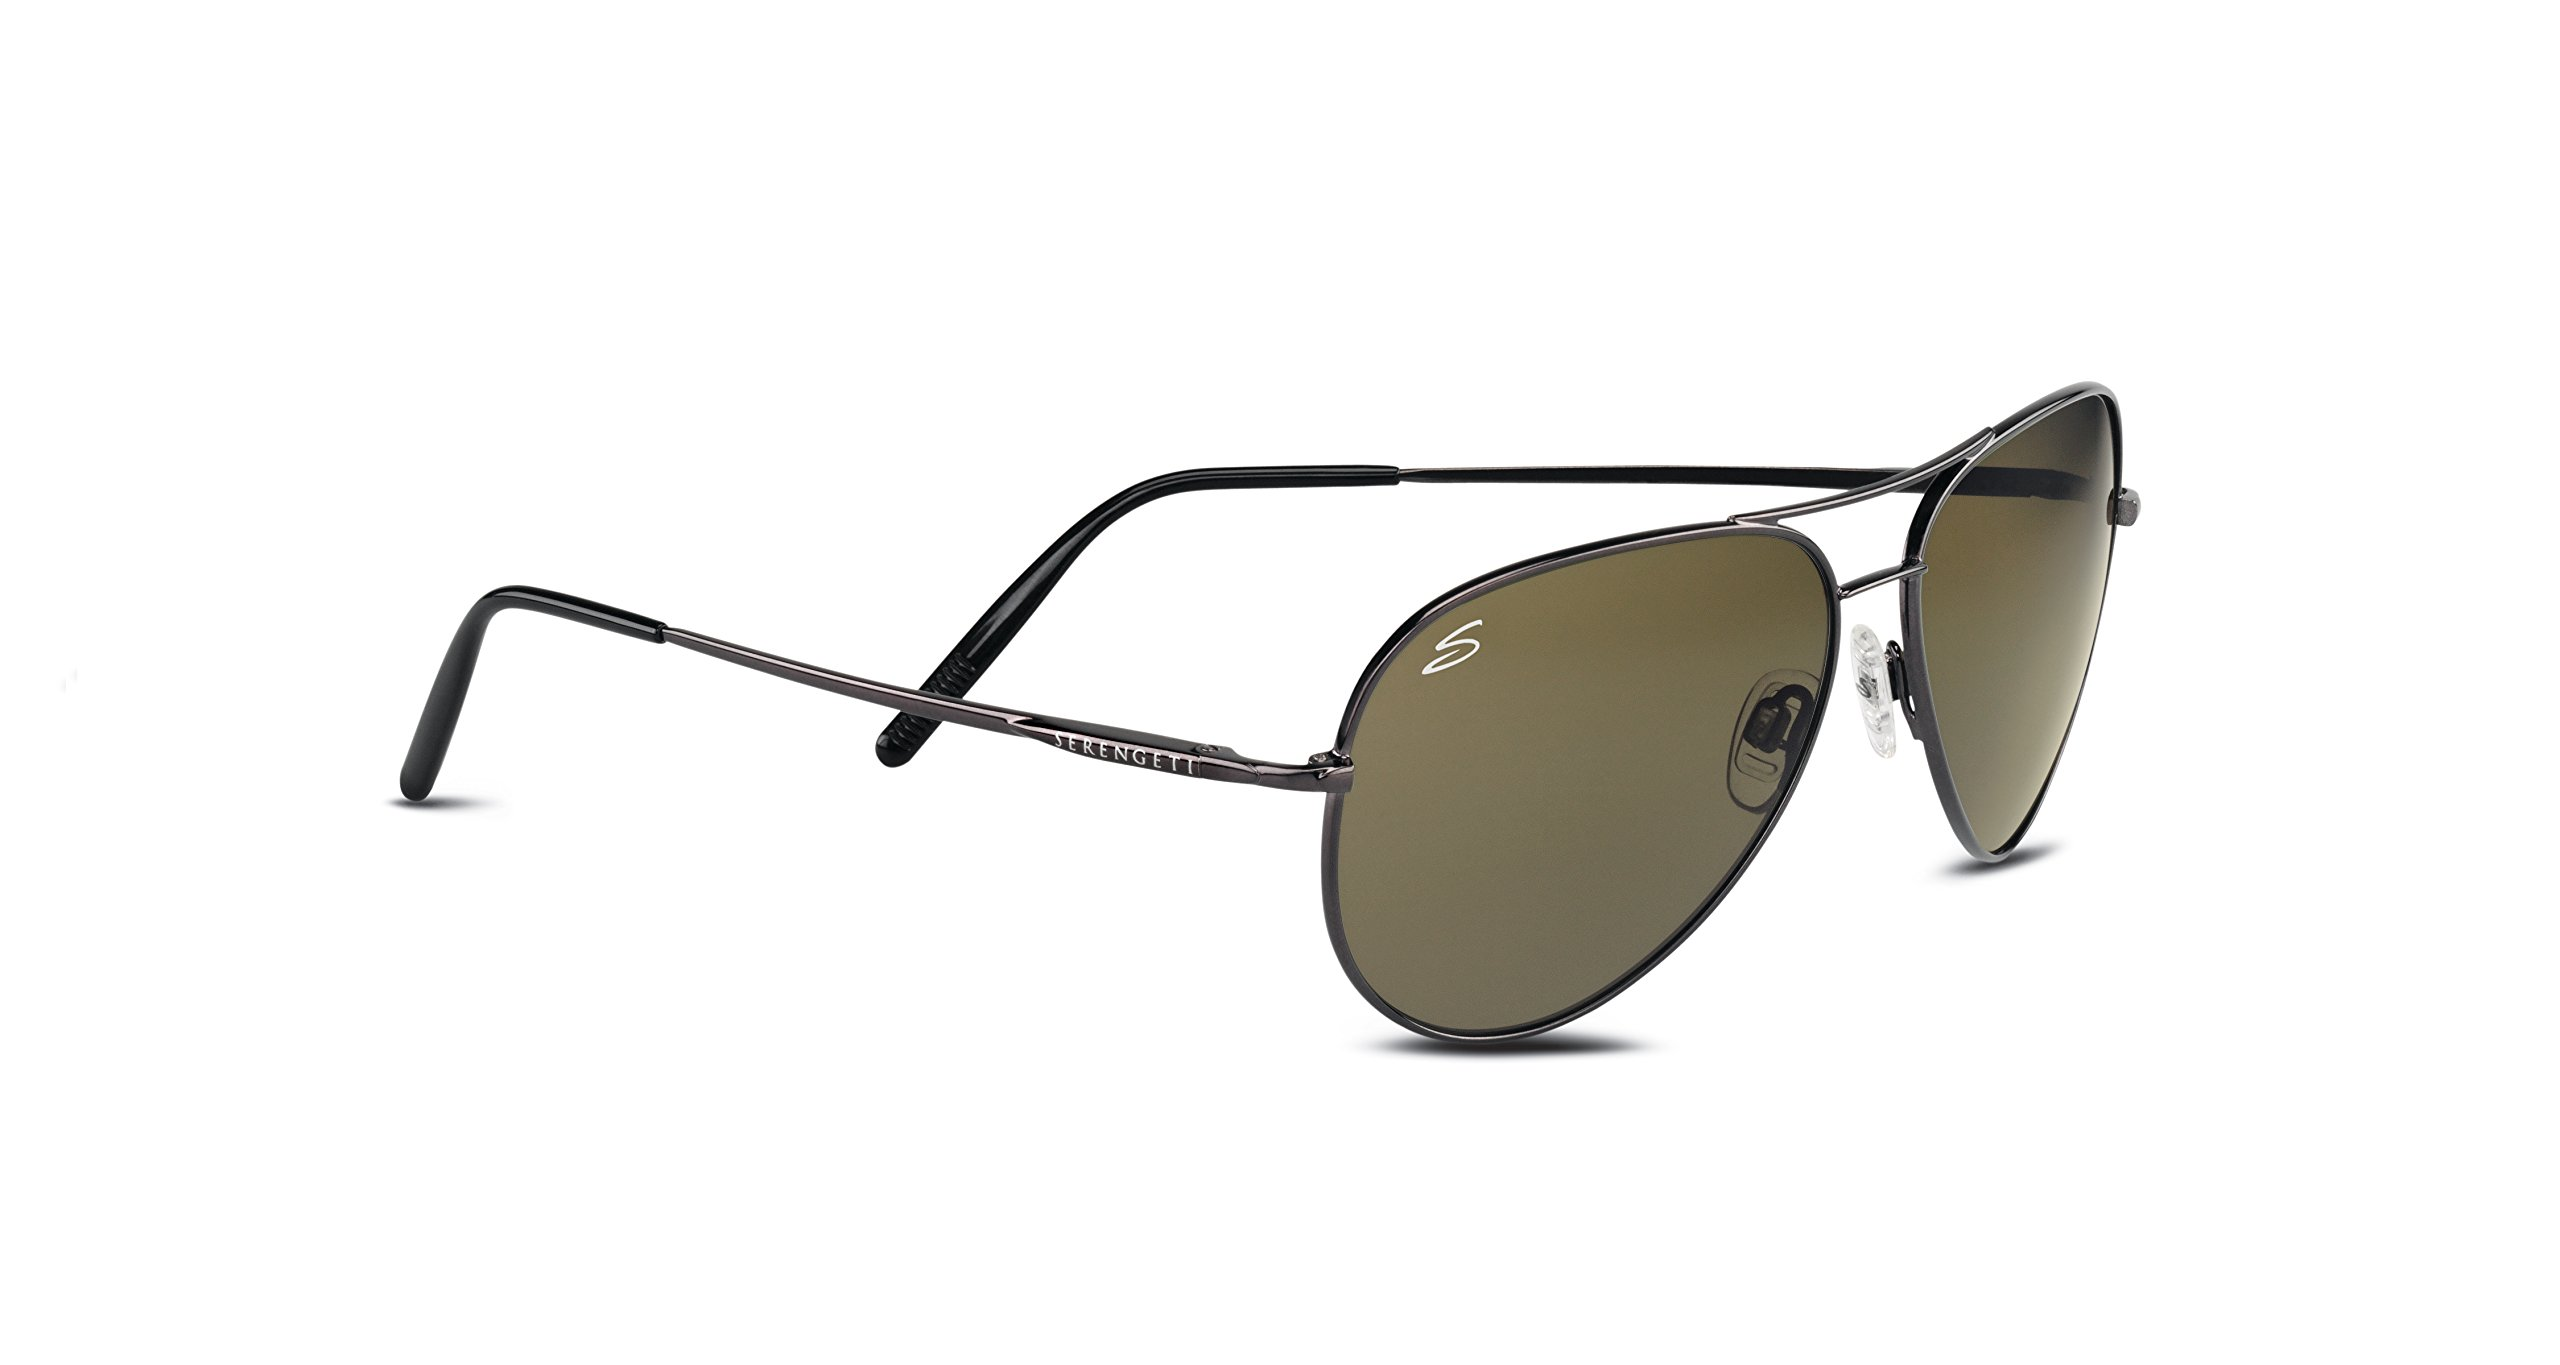 Serengeti Medium Aviator Sunglasses,Shiny Gunmetal by Serengeti